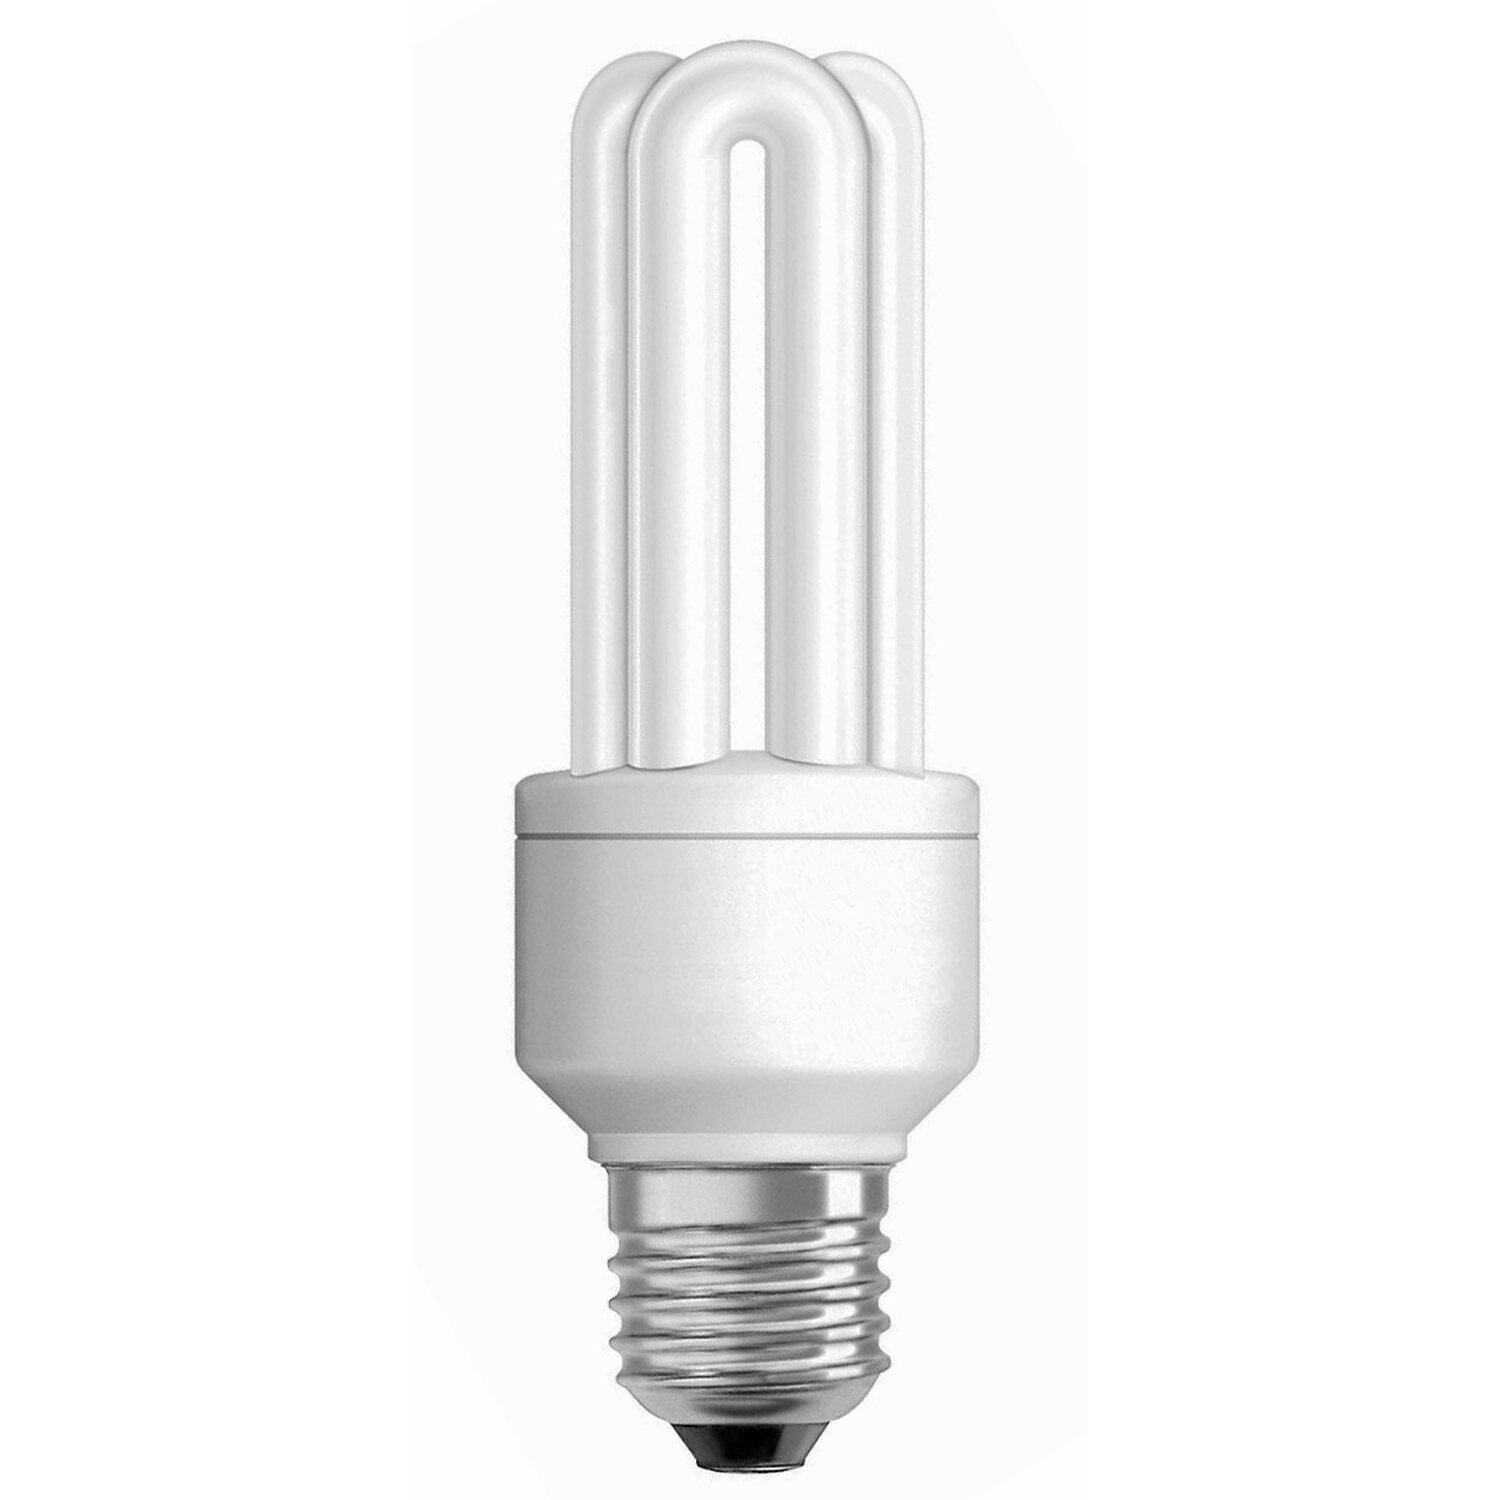 Osram Energiesparlampe Stabform E27 / 14 W (740...